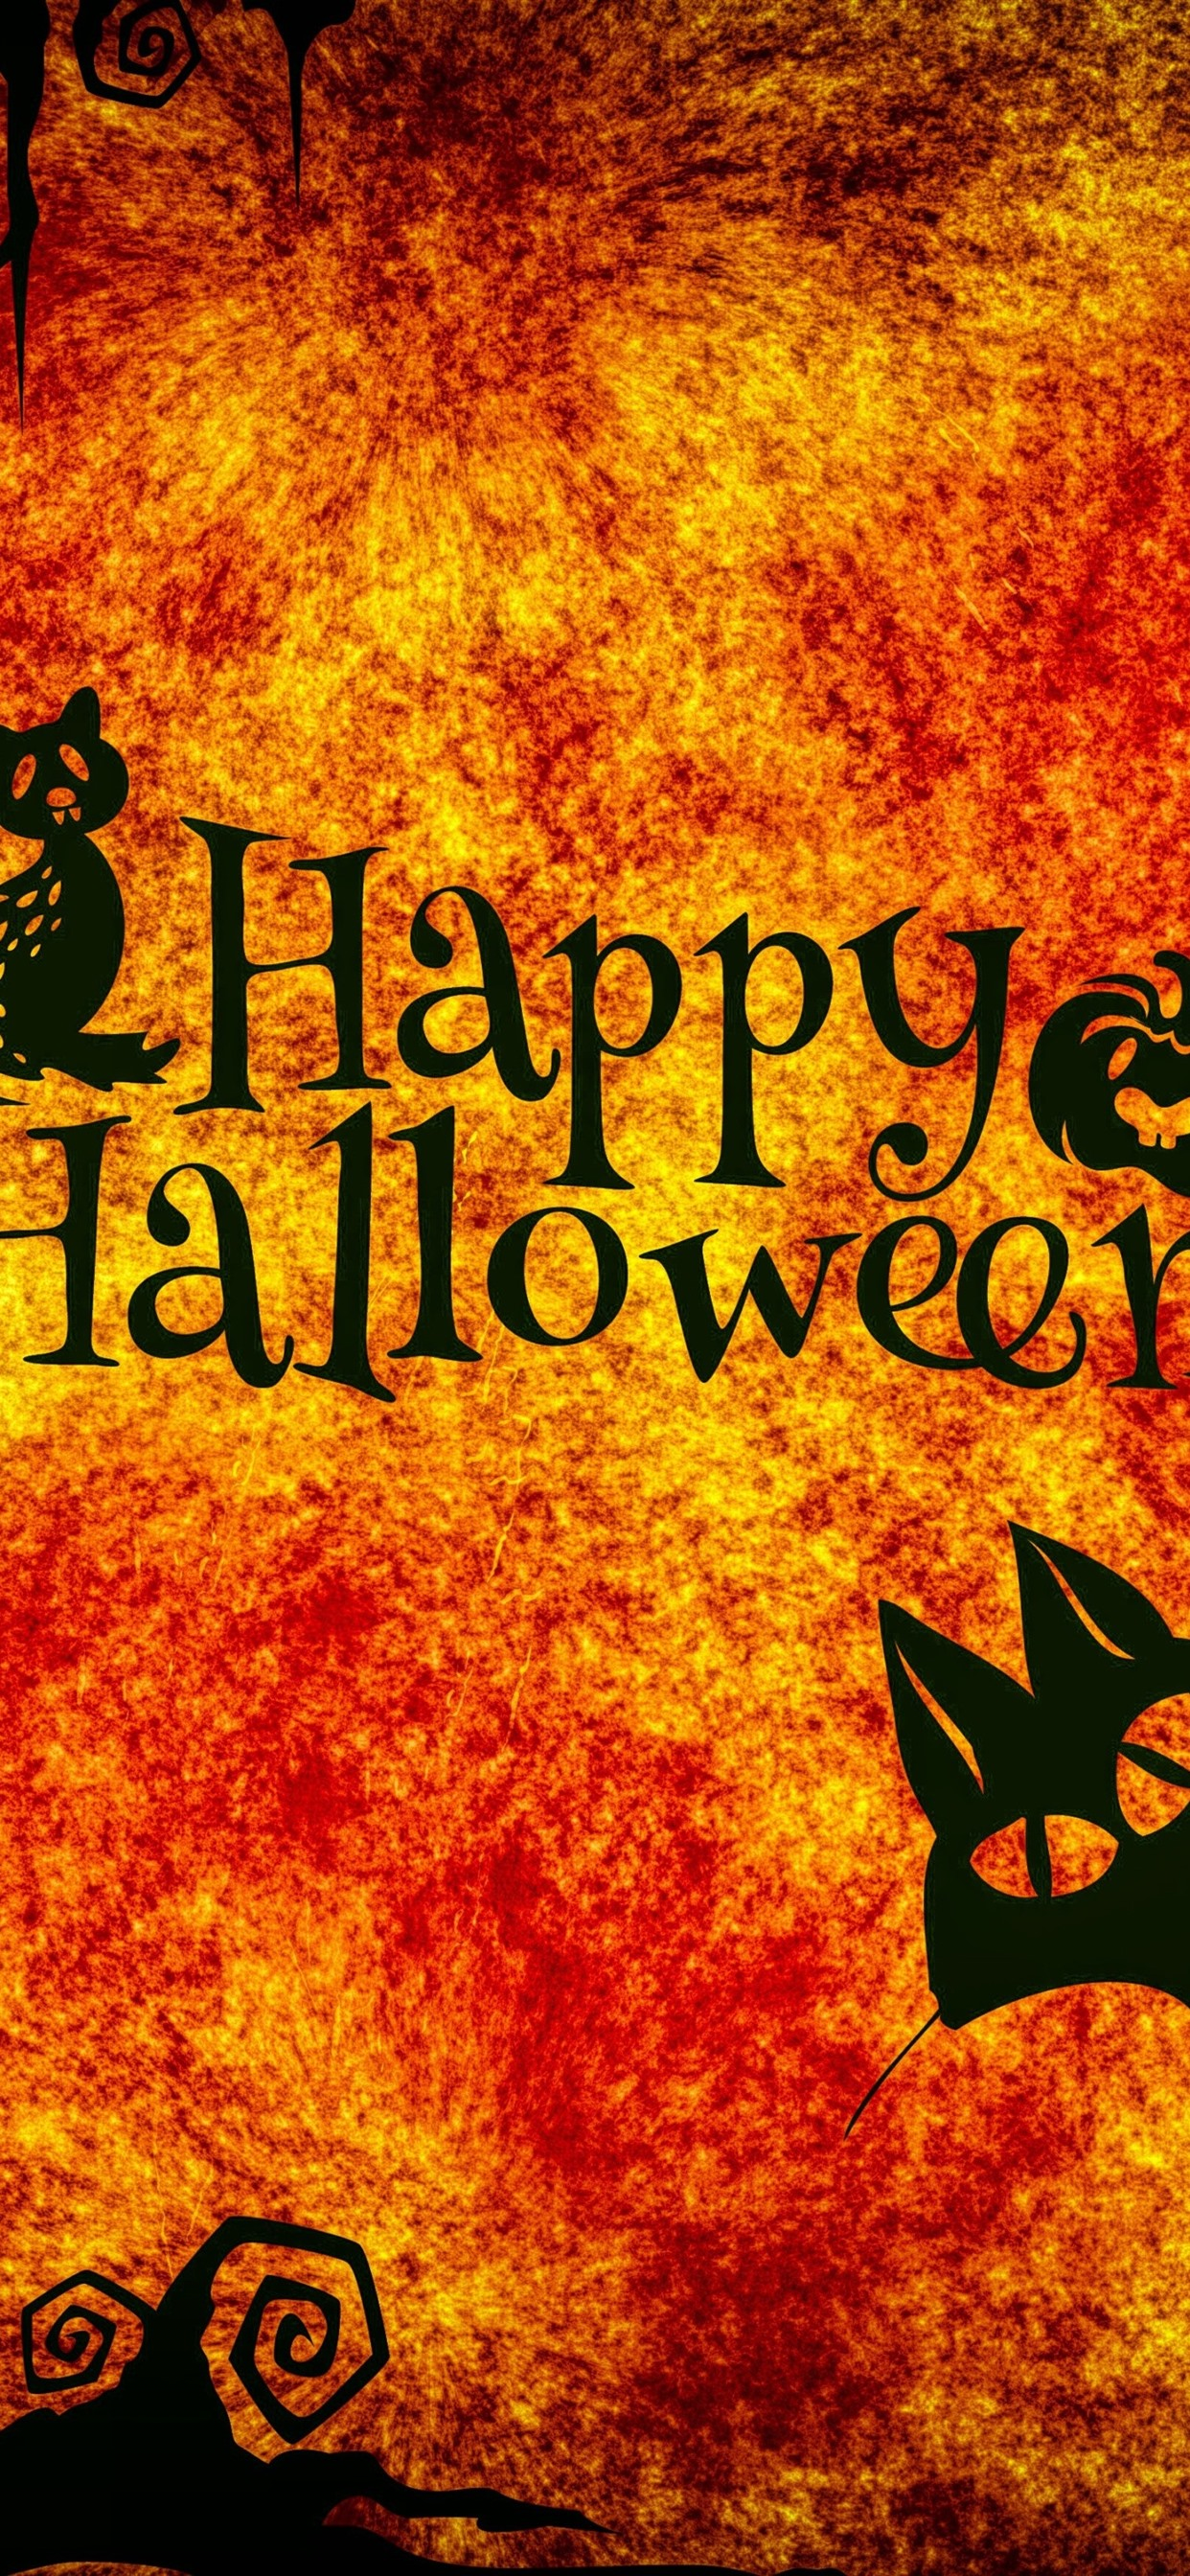 Happy Halloween Night Cats Owl Spider Pumpkin 1242x2688